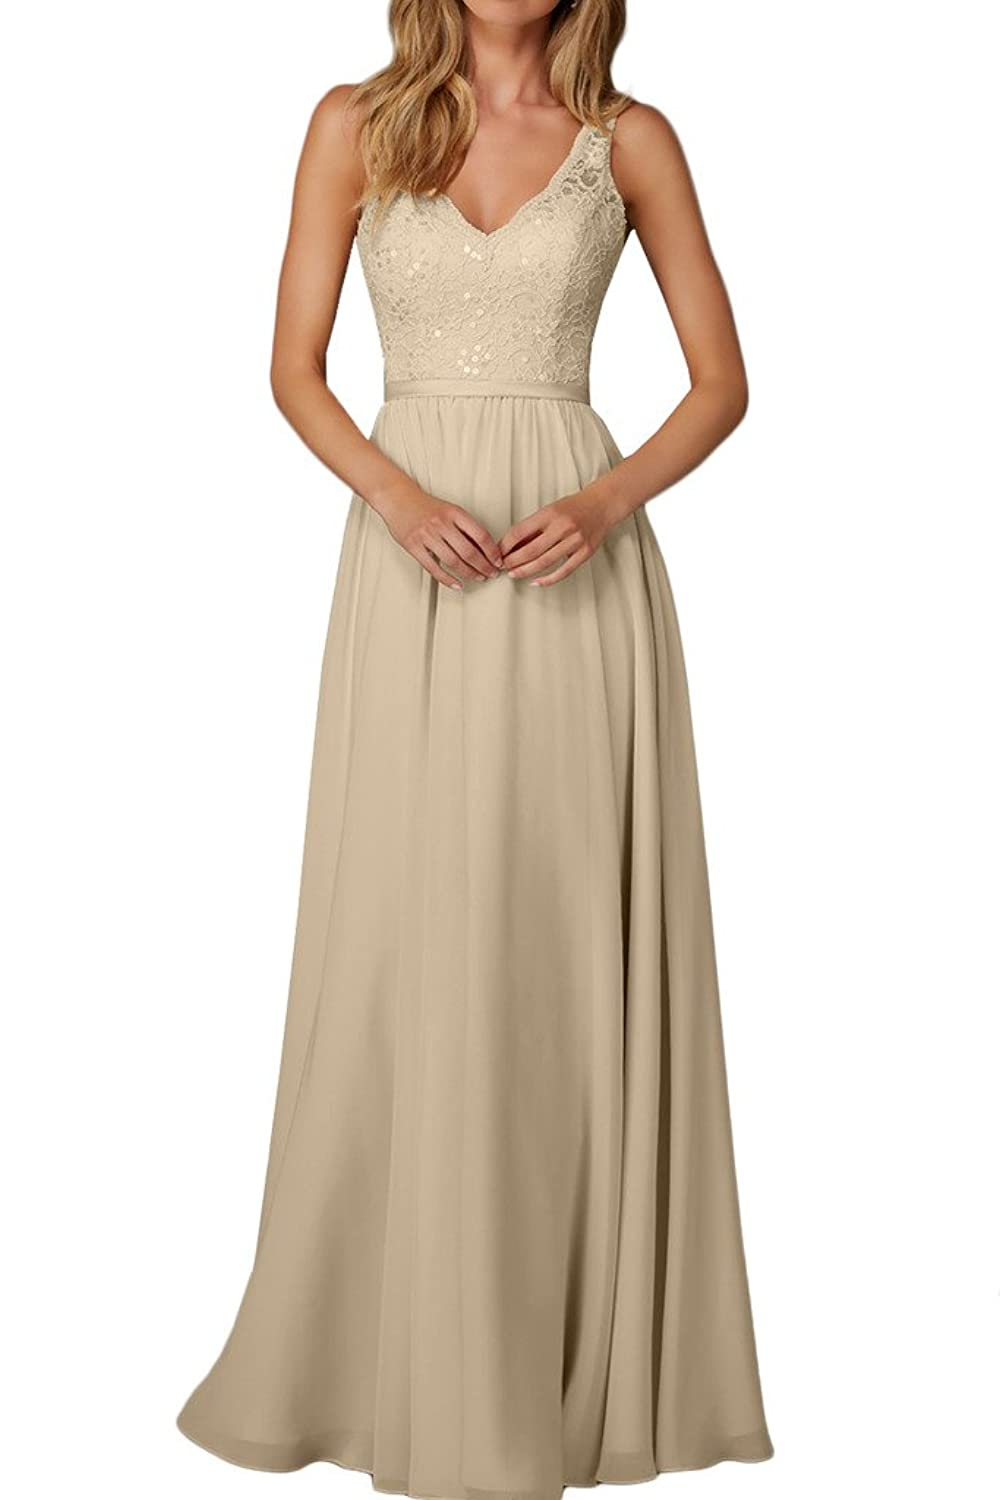 Charm Bridal Long Chiffon Lace V Neck Bridesmaid Women Evening Dress Sleeveless